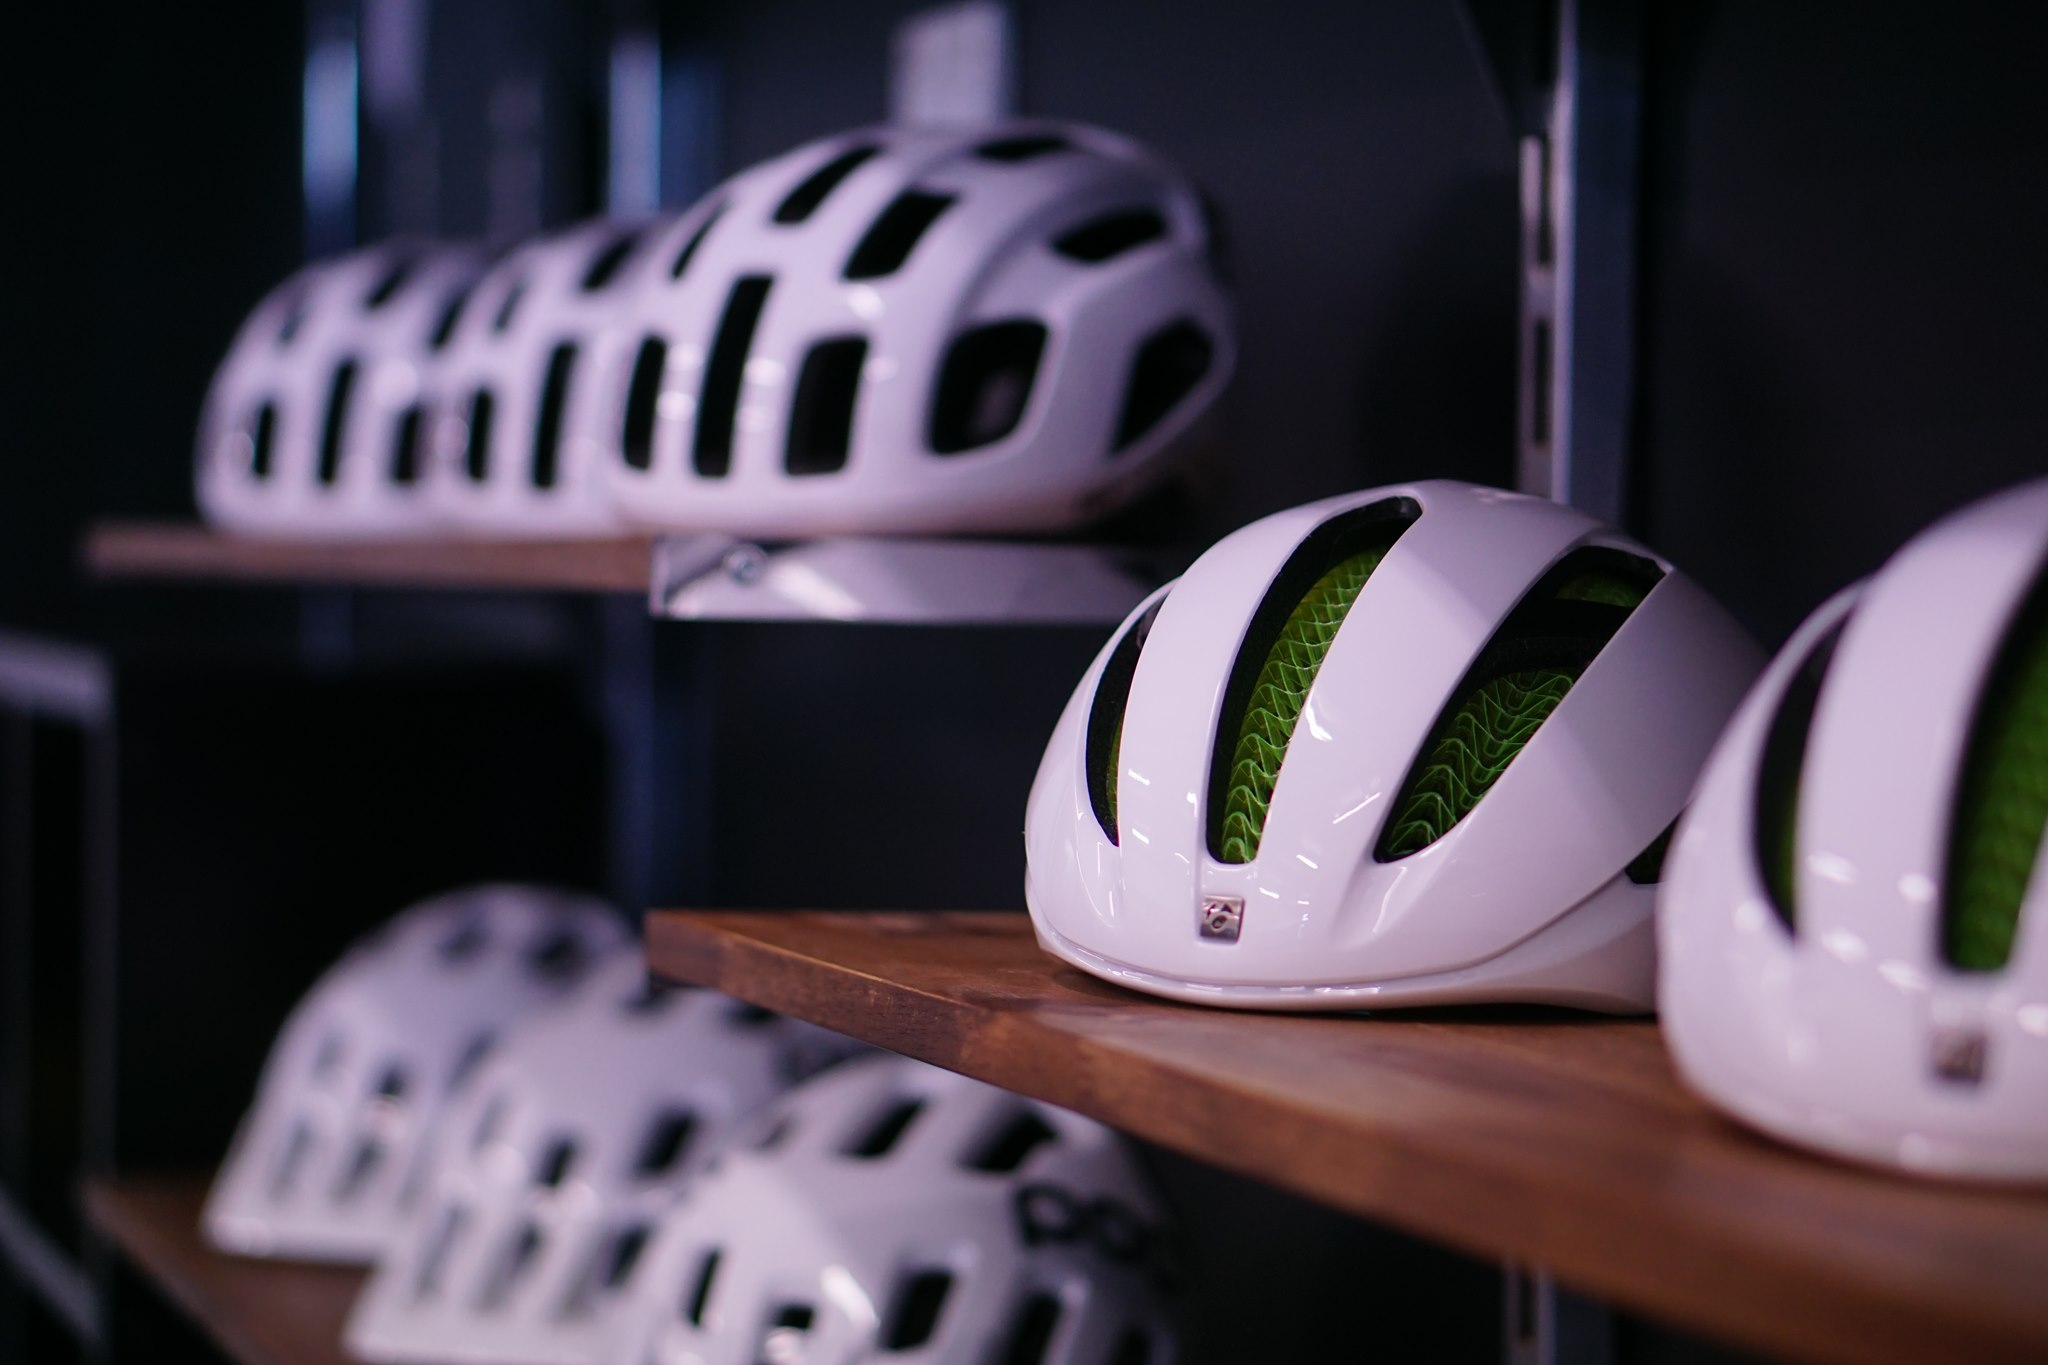 Bontrager helmets on display in bike shop